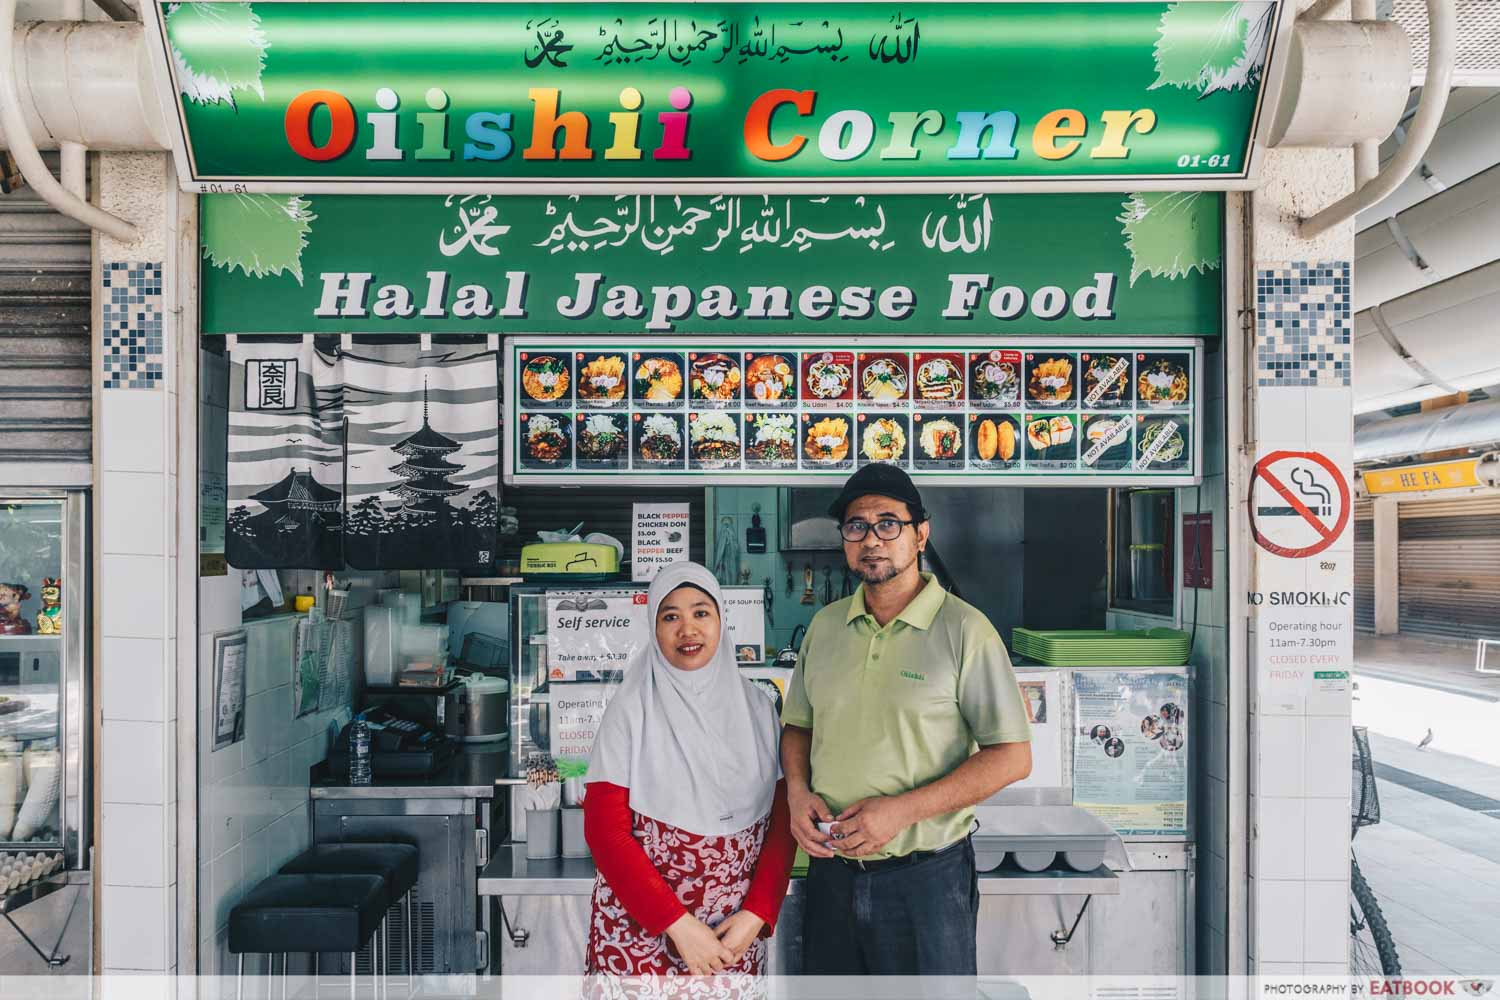 Oiishii Corner - Storefront with owners